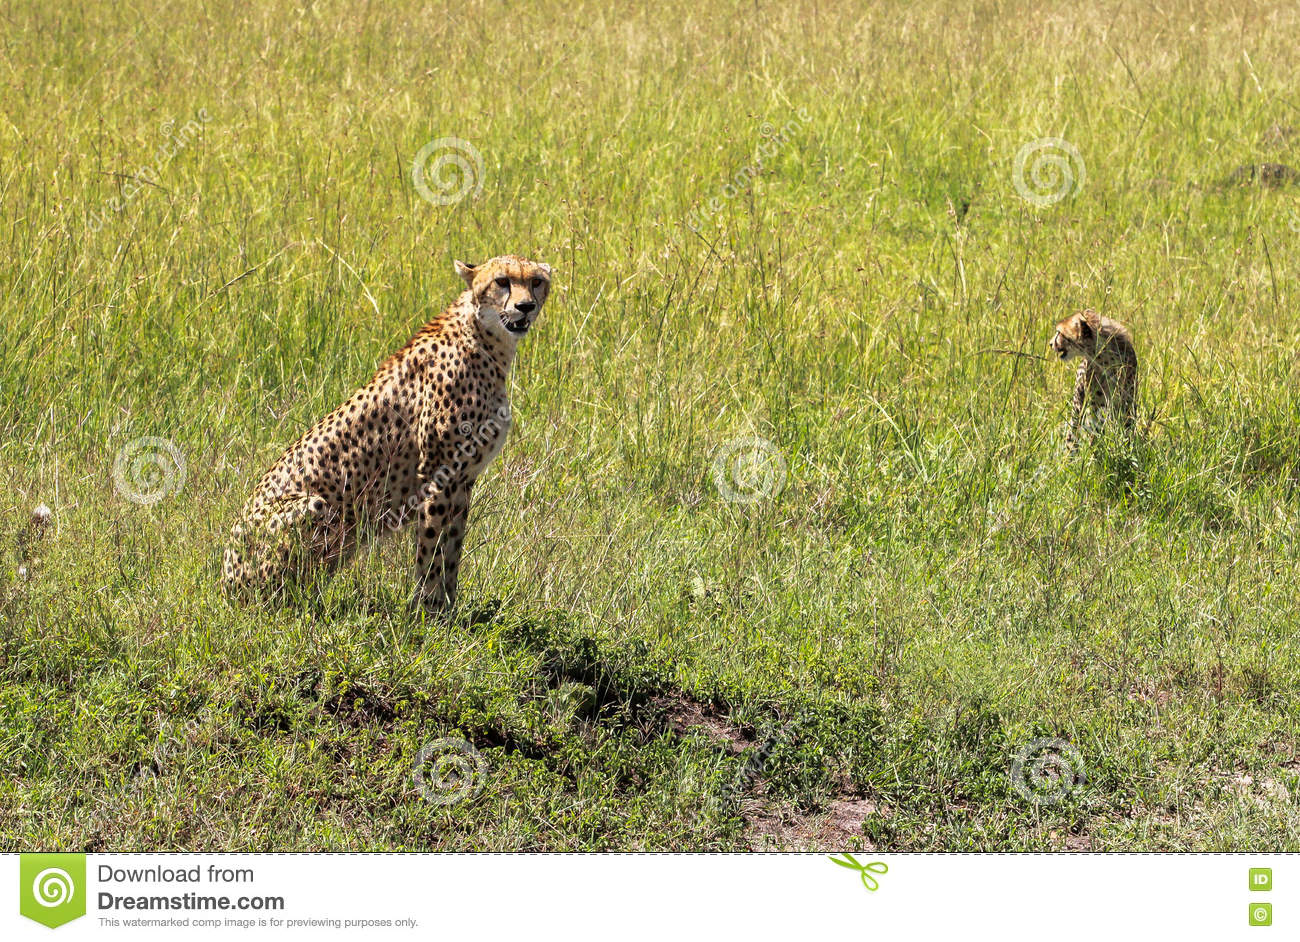 Cheetah in Maasai Mara, Kenya